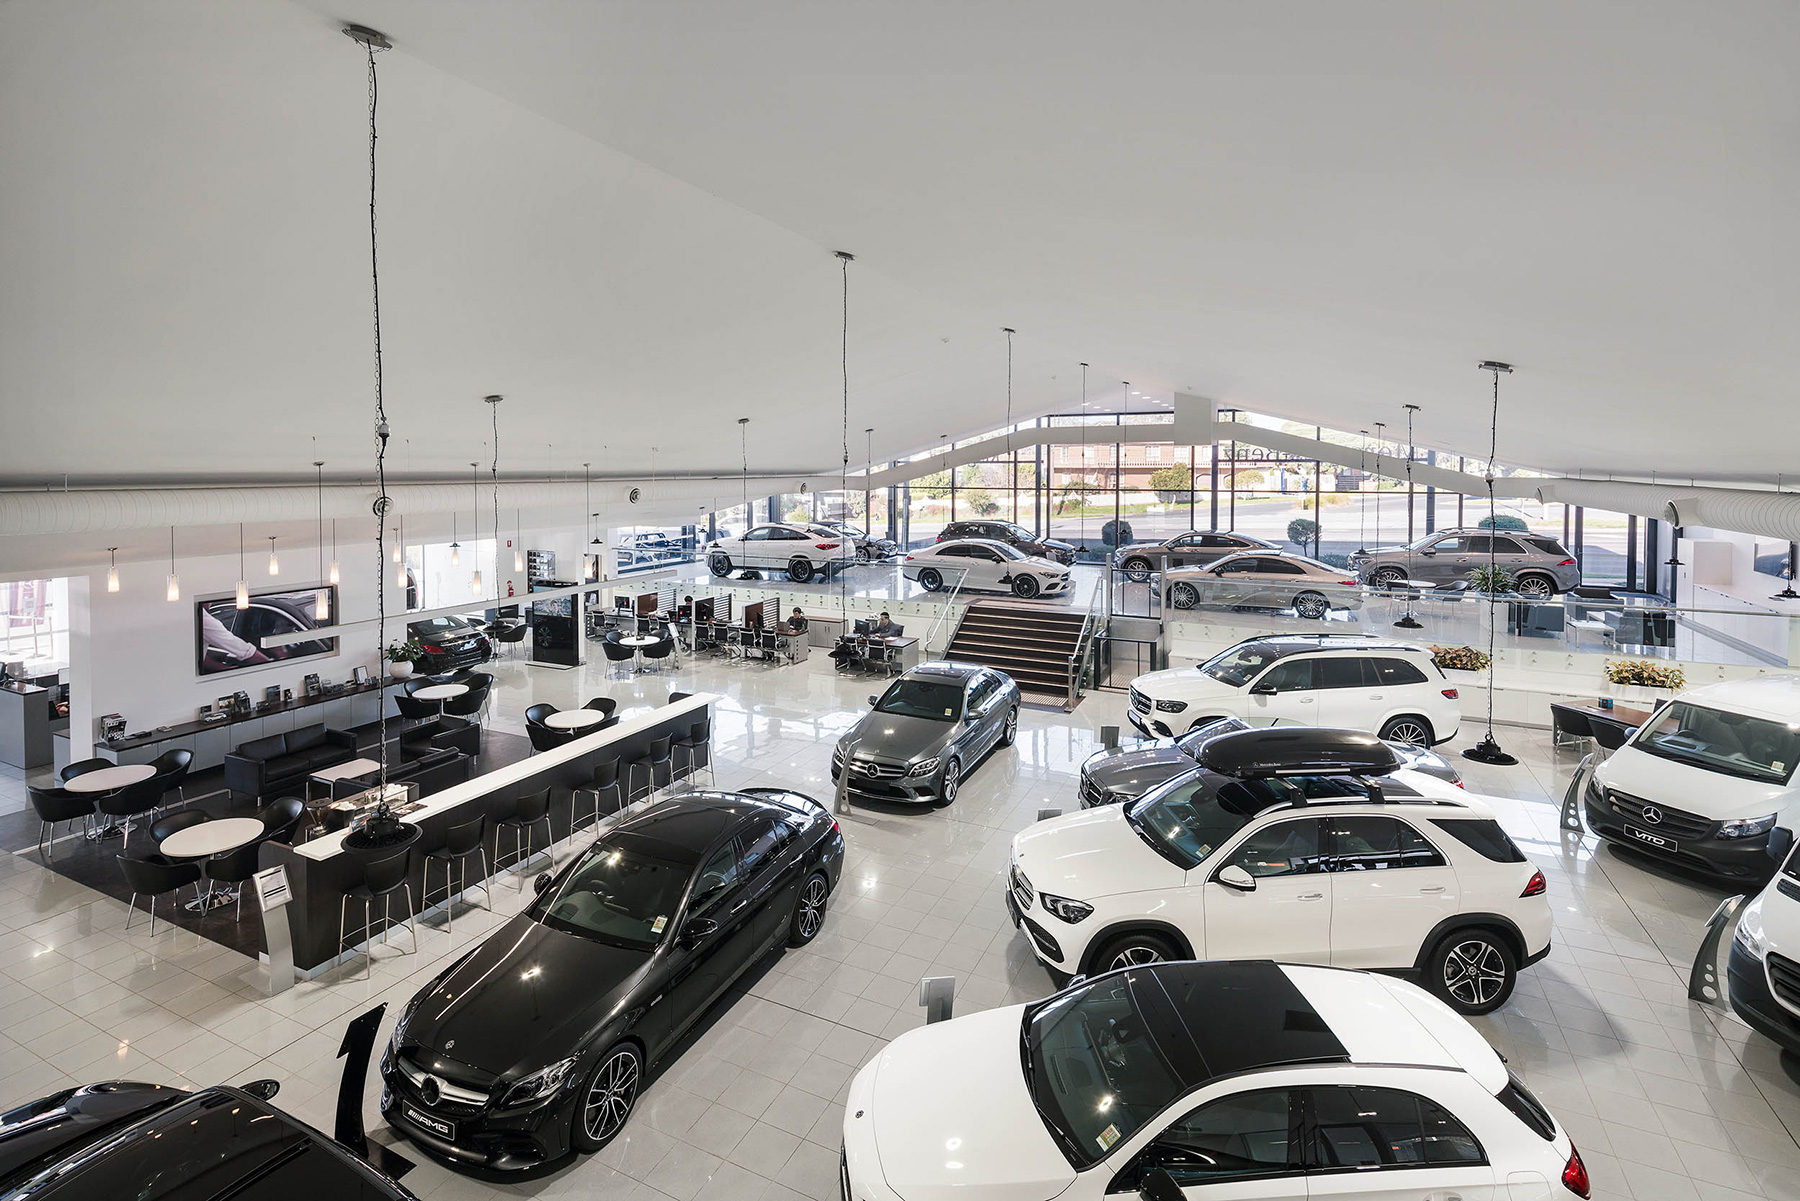 c. kairouz architects commercial interior design for car dealership showroom fitout image